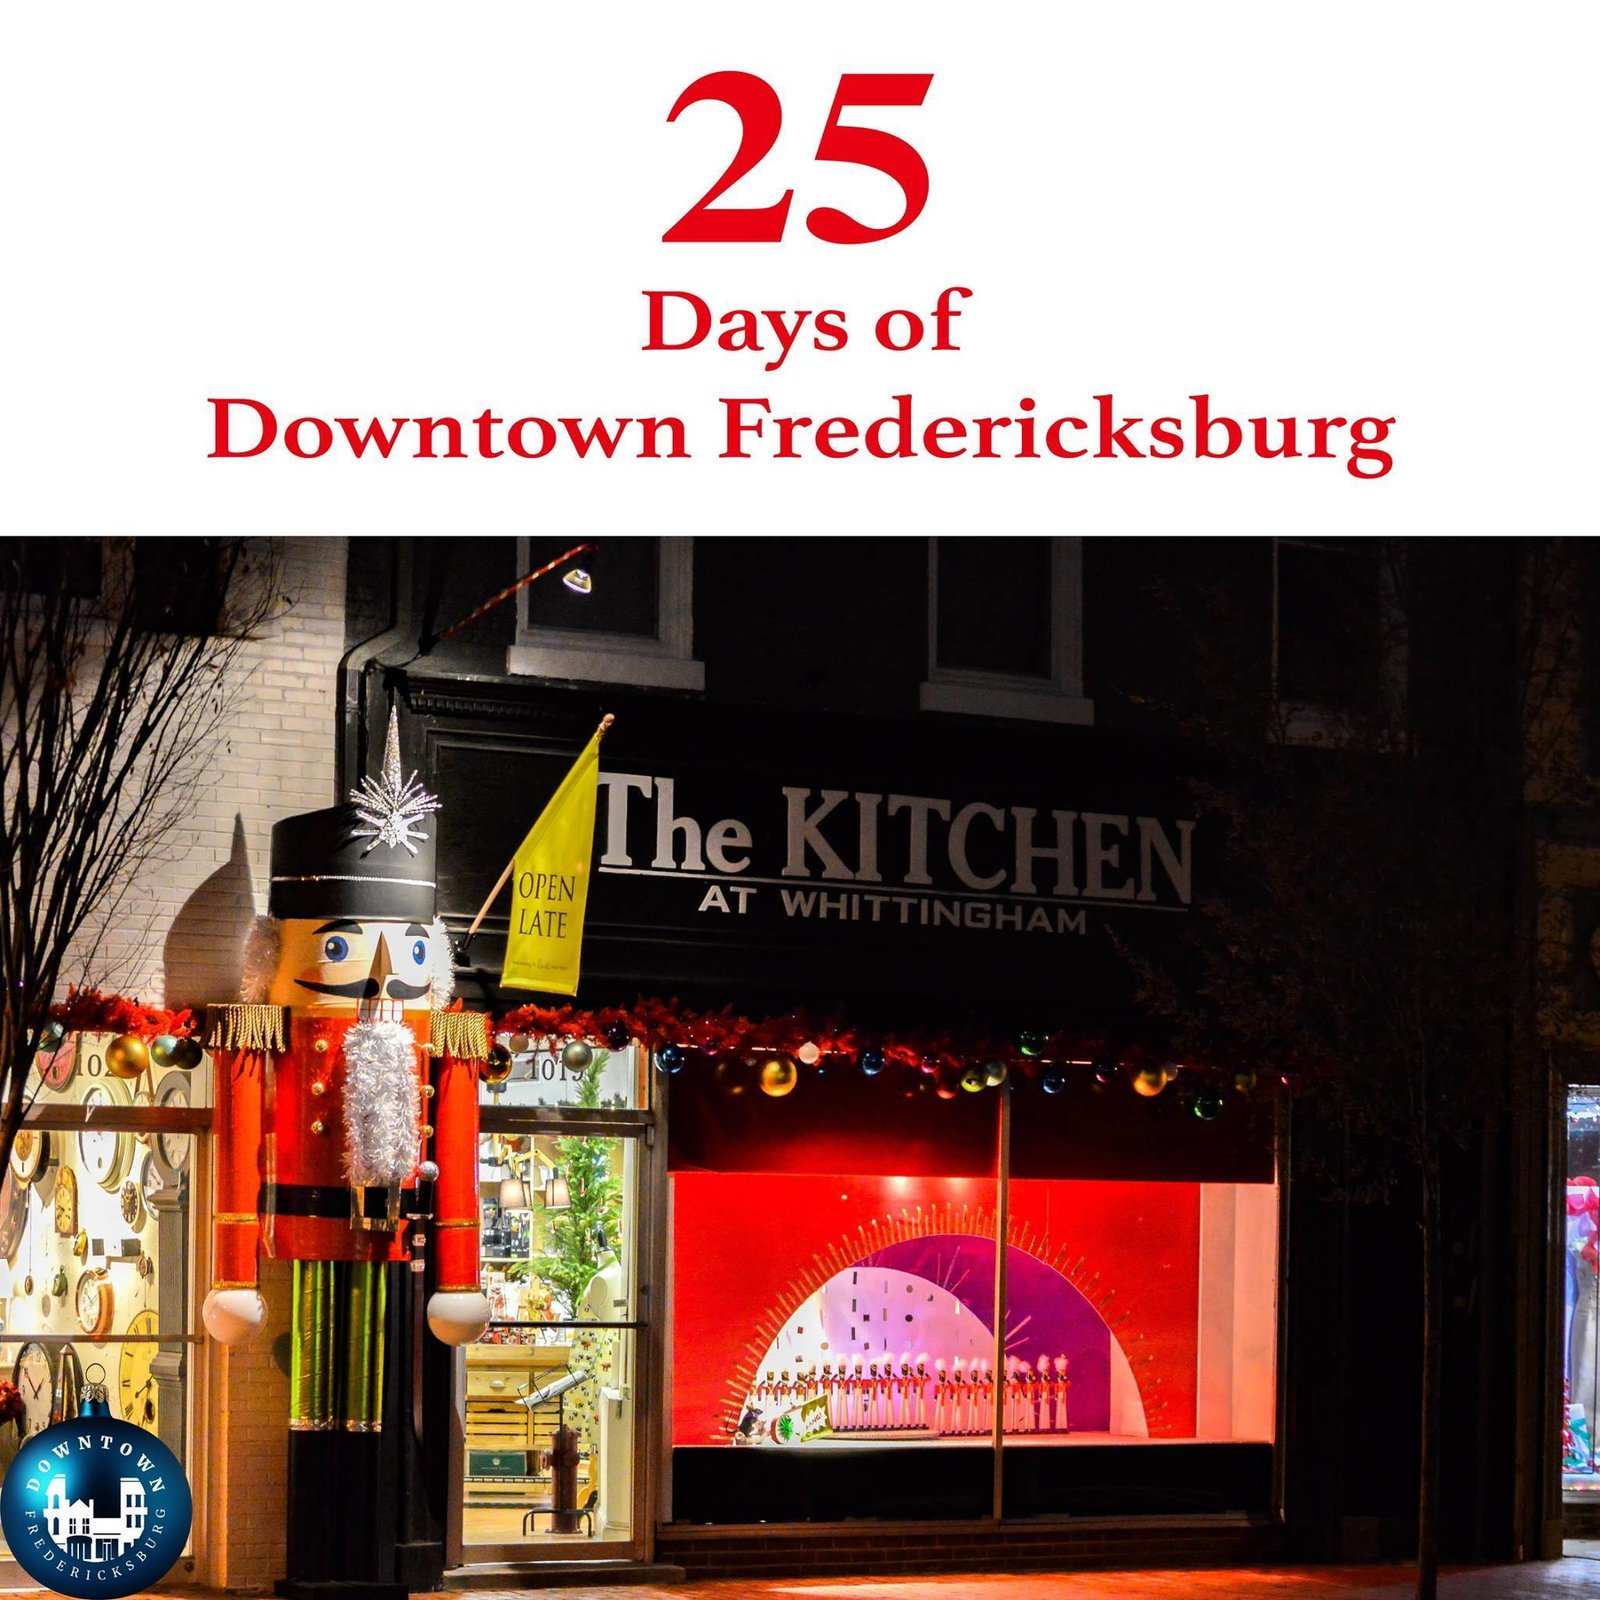 Gift Twenty-two A giant nutcracker, dancing ballerinas, and all the Christmas glassware and cookware you may need to make your holiday feast can be found at Whittingham. https://www.facebook.com/DowntownFredericksburg/  25 Days of Downtown Fredericksburg